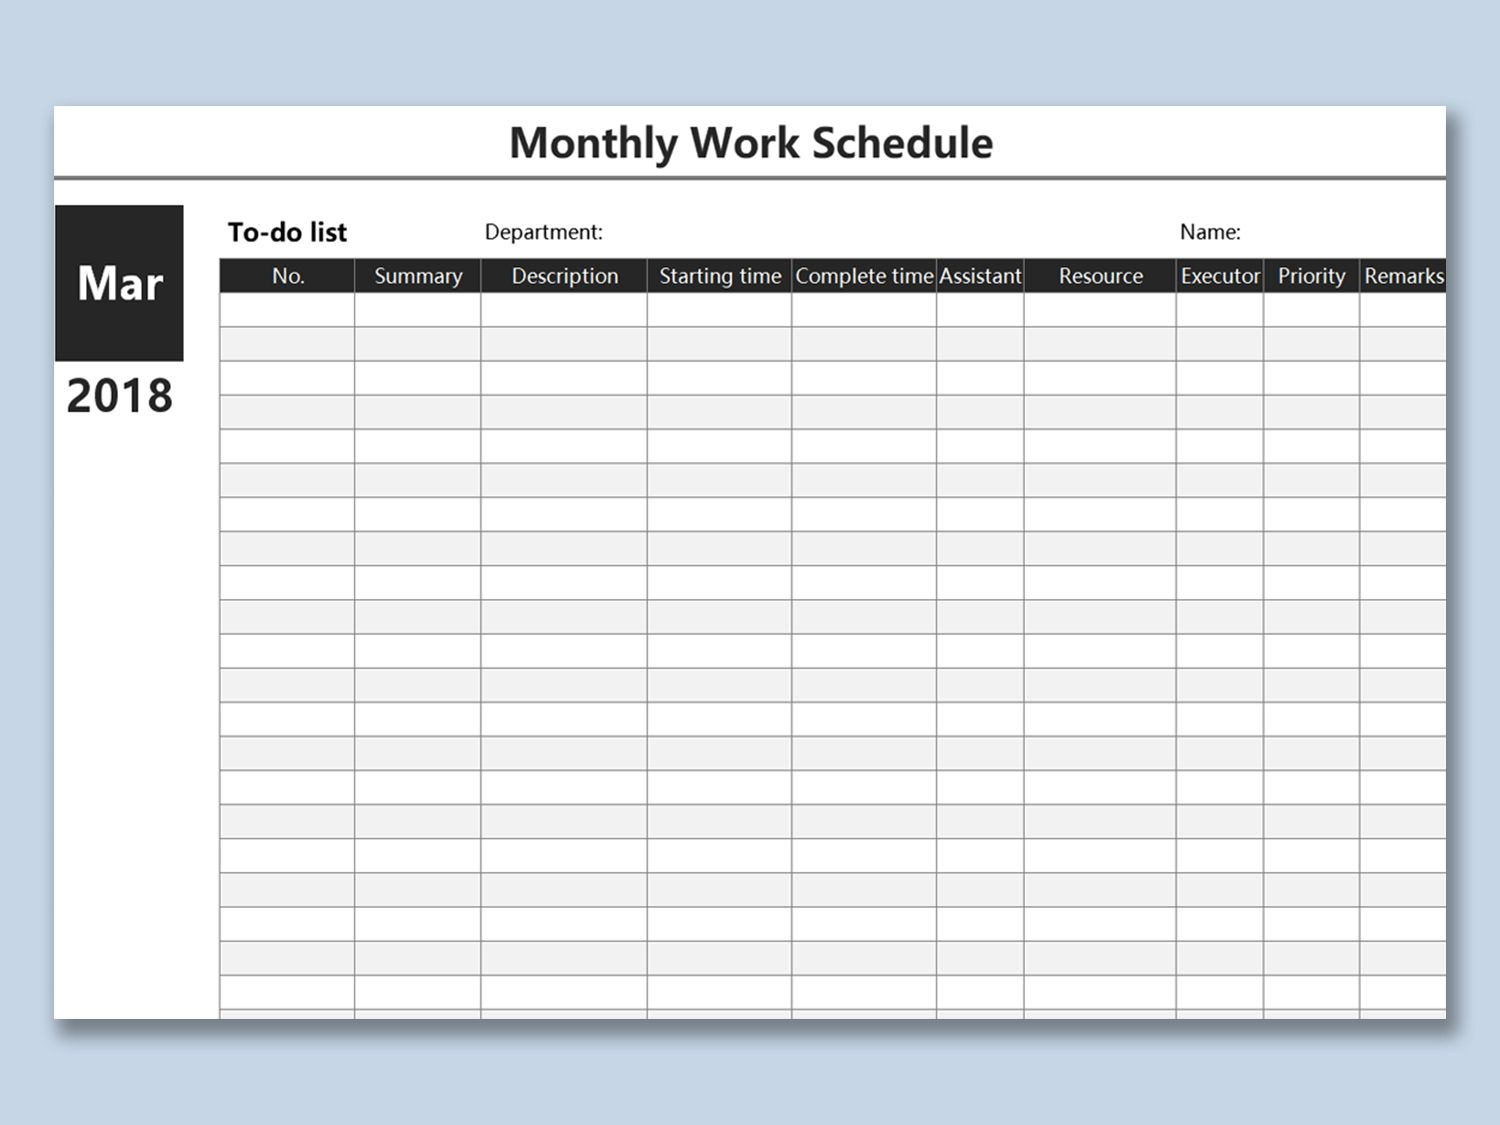 Spreadsheet Work Schedule Out Templates Template Ly Excel Regarding Blank Monthly Work Schedule Temp In 2020 Schedule Template Work Planner Business Card Template Word Monthly work schedule template excel